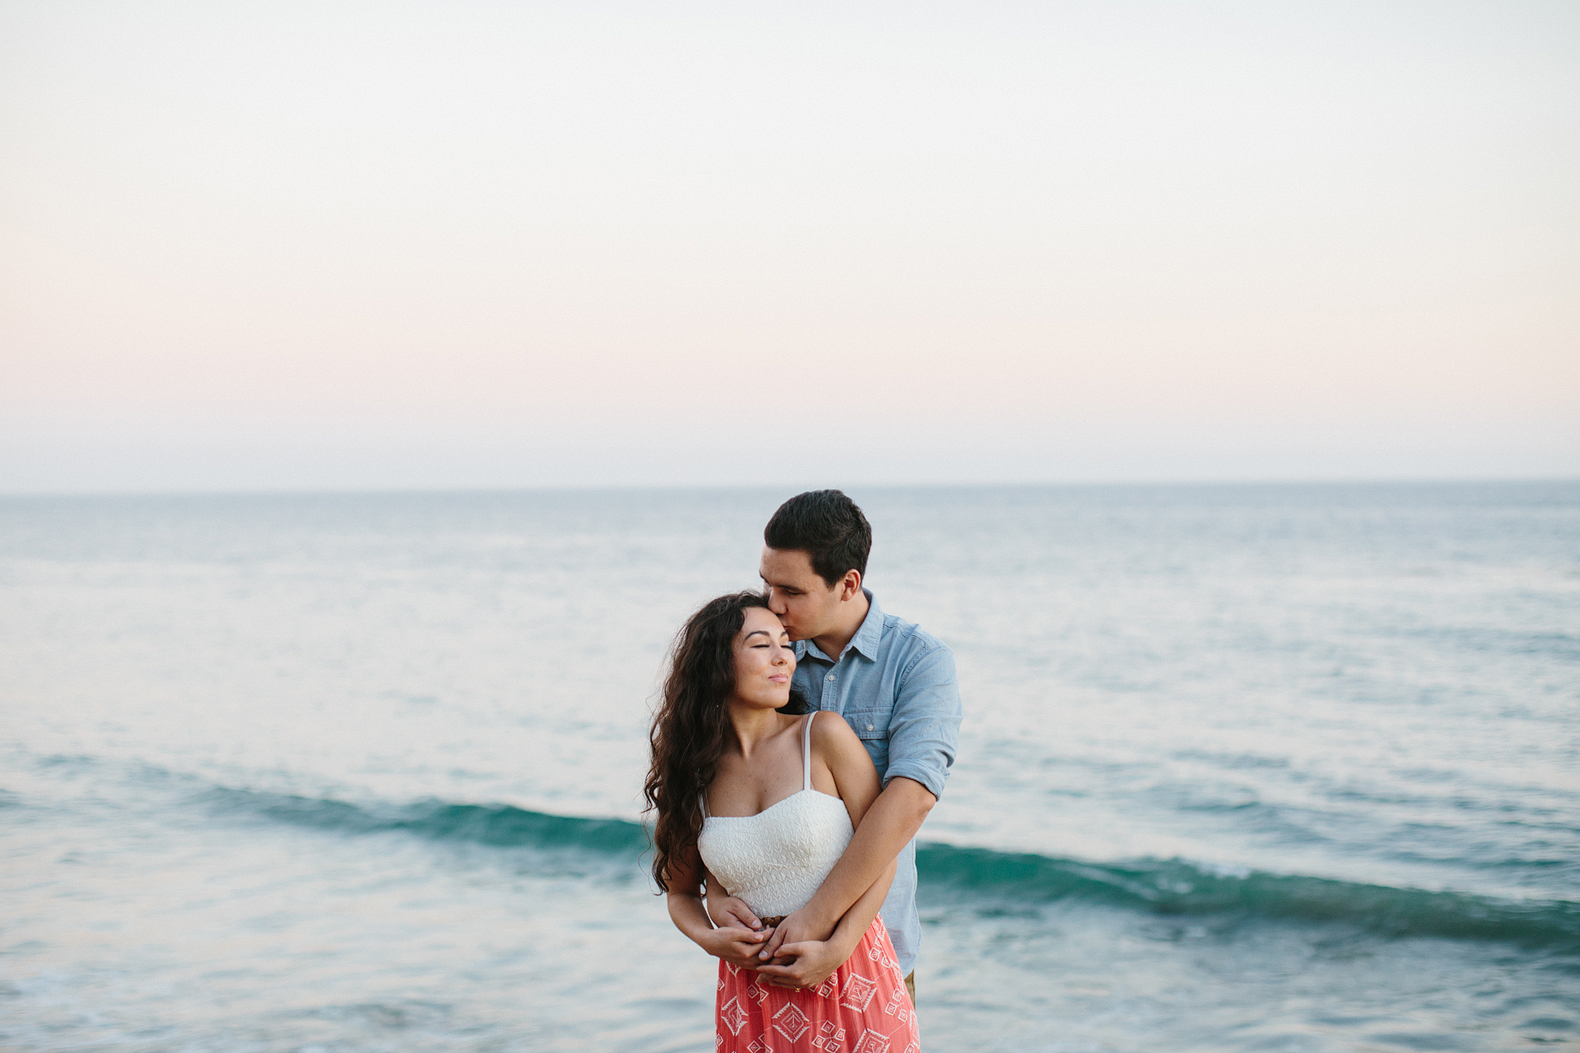 Marianne Wilson Photography Blog - Page 5 of 111 - Malibu California Husband and Wife Wedding ...